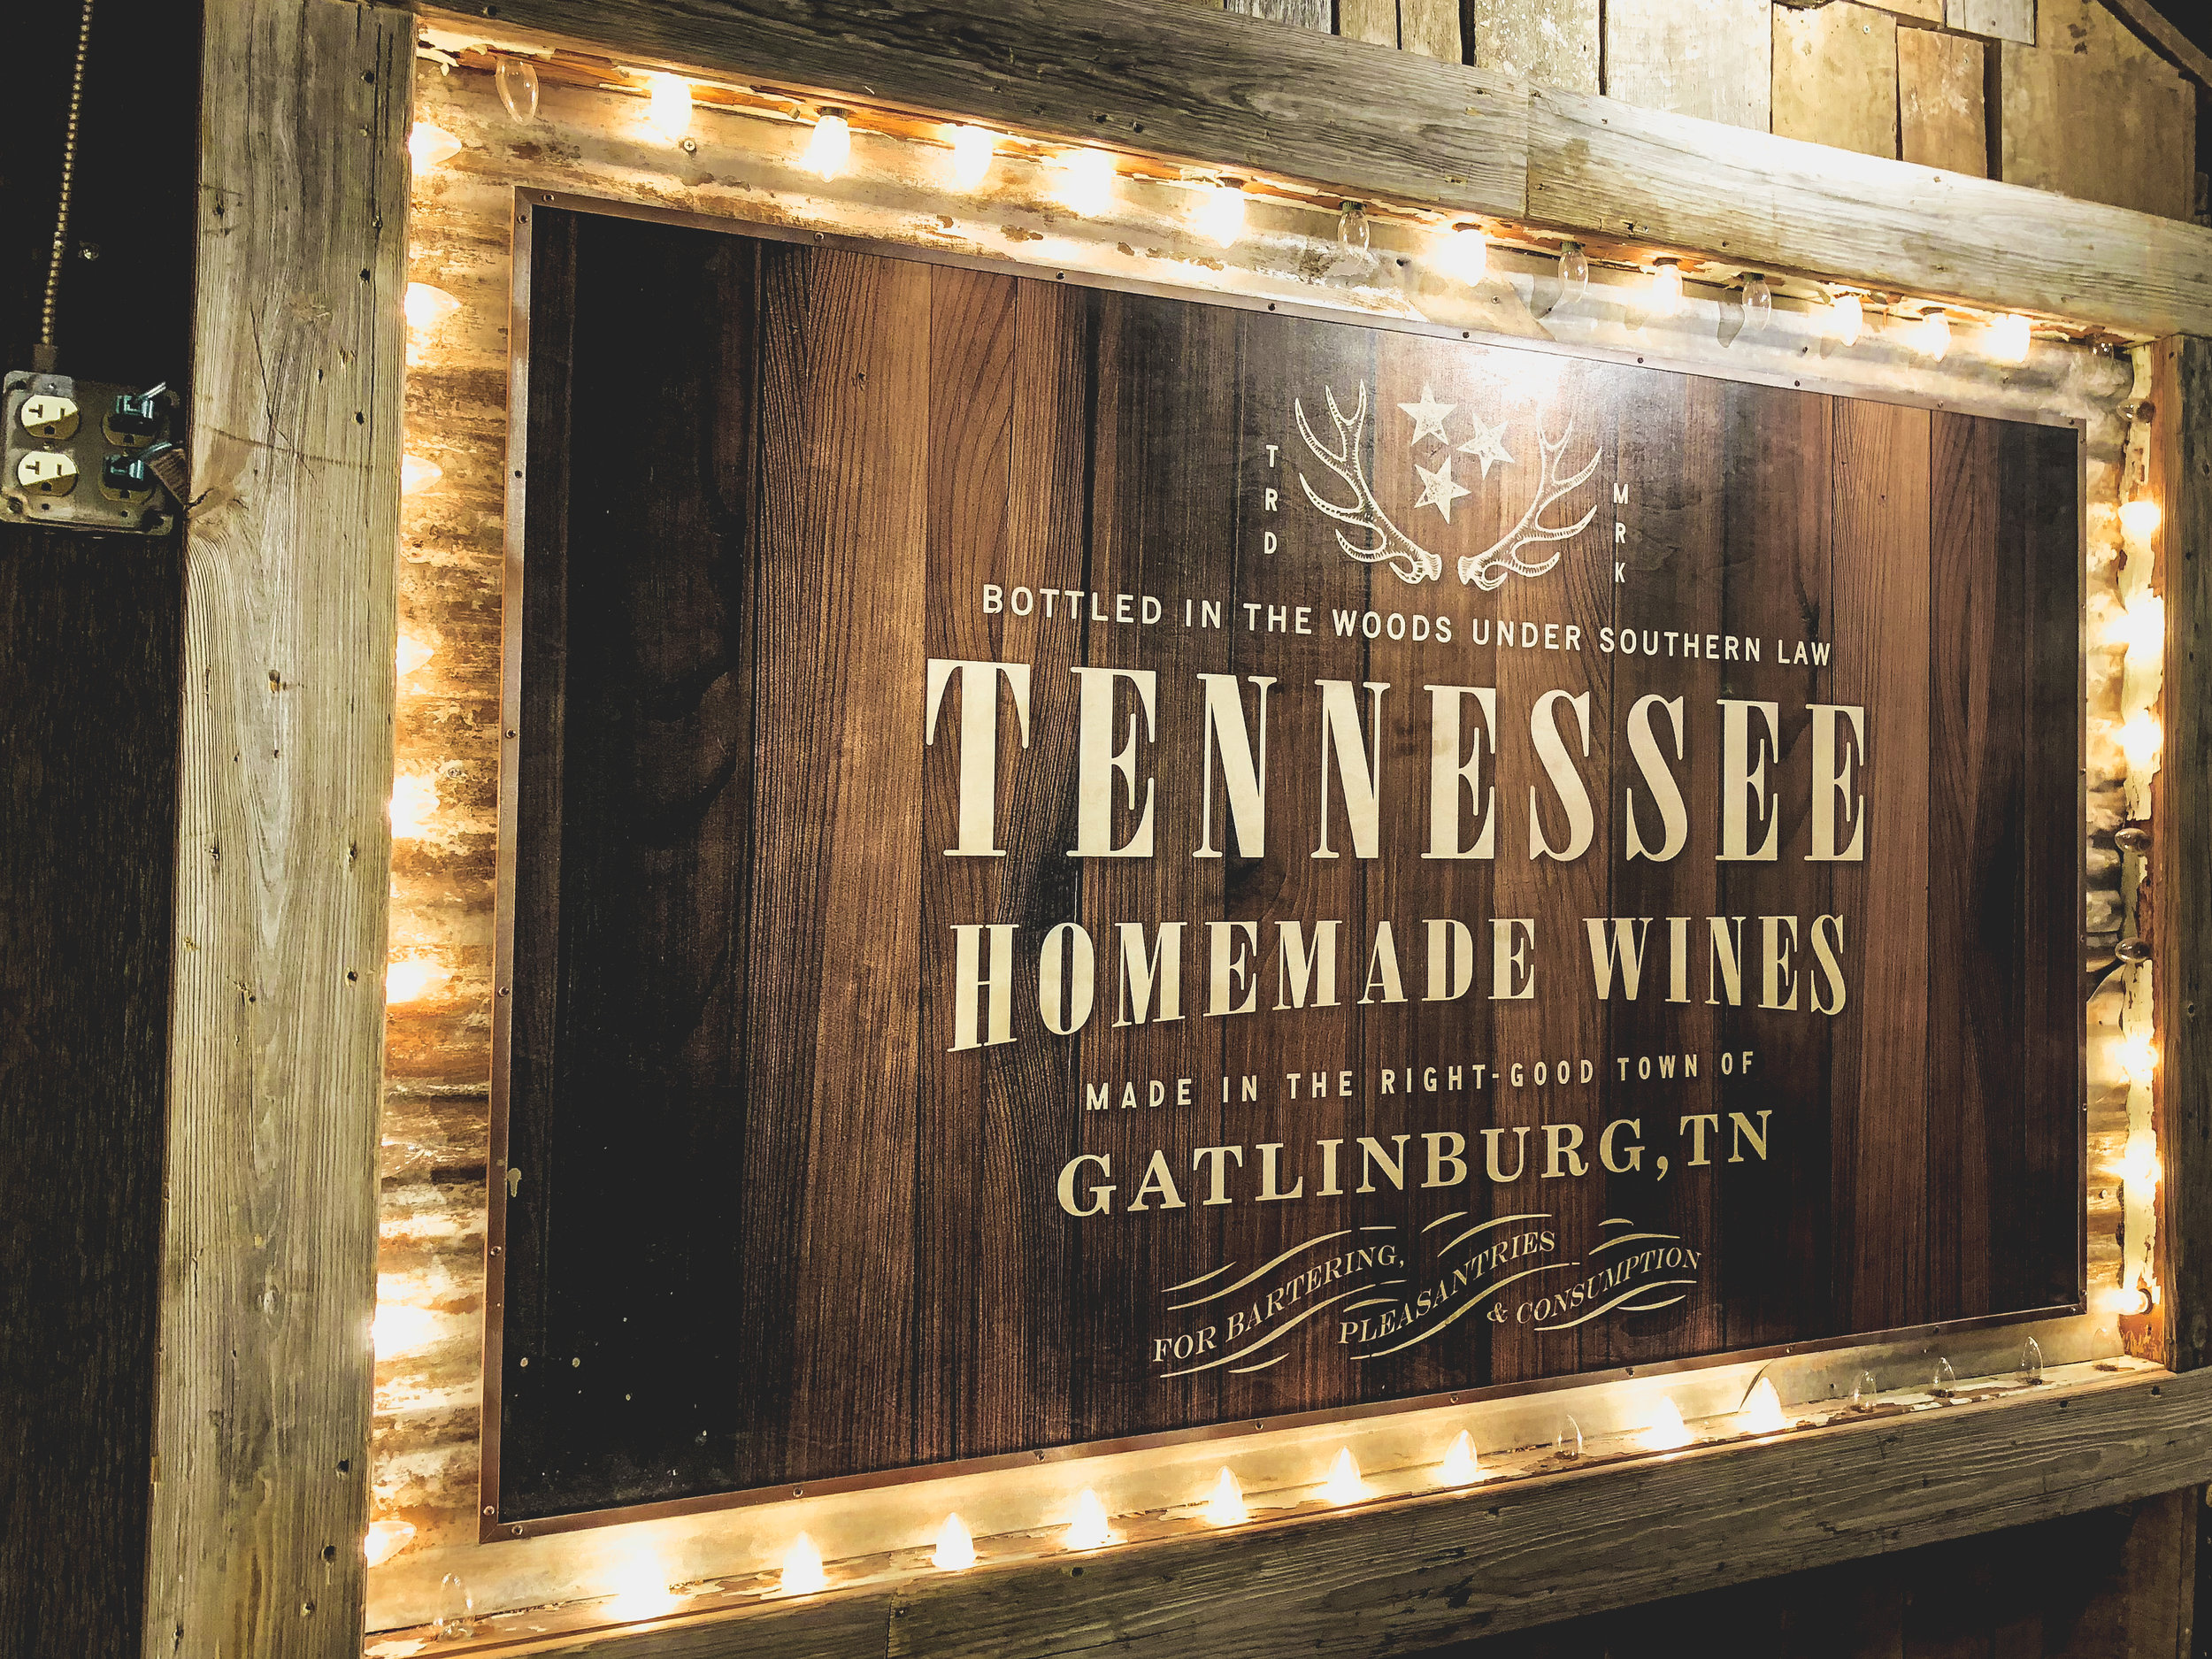 gatlinburg-tennessee-winefest-27-of-29.jpg